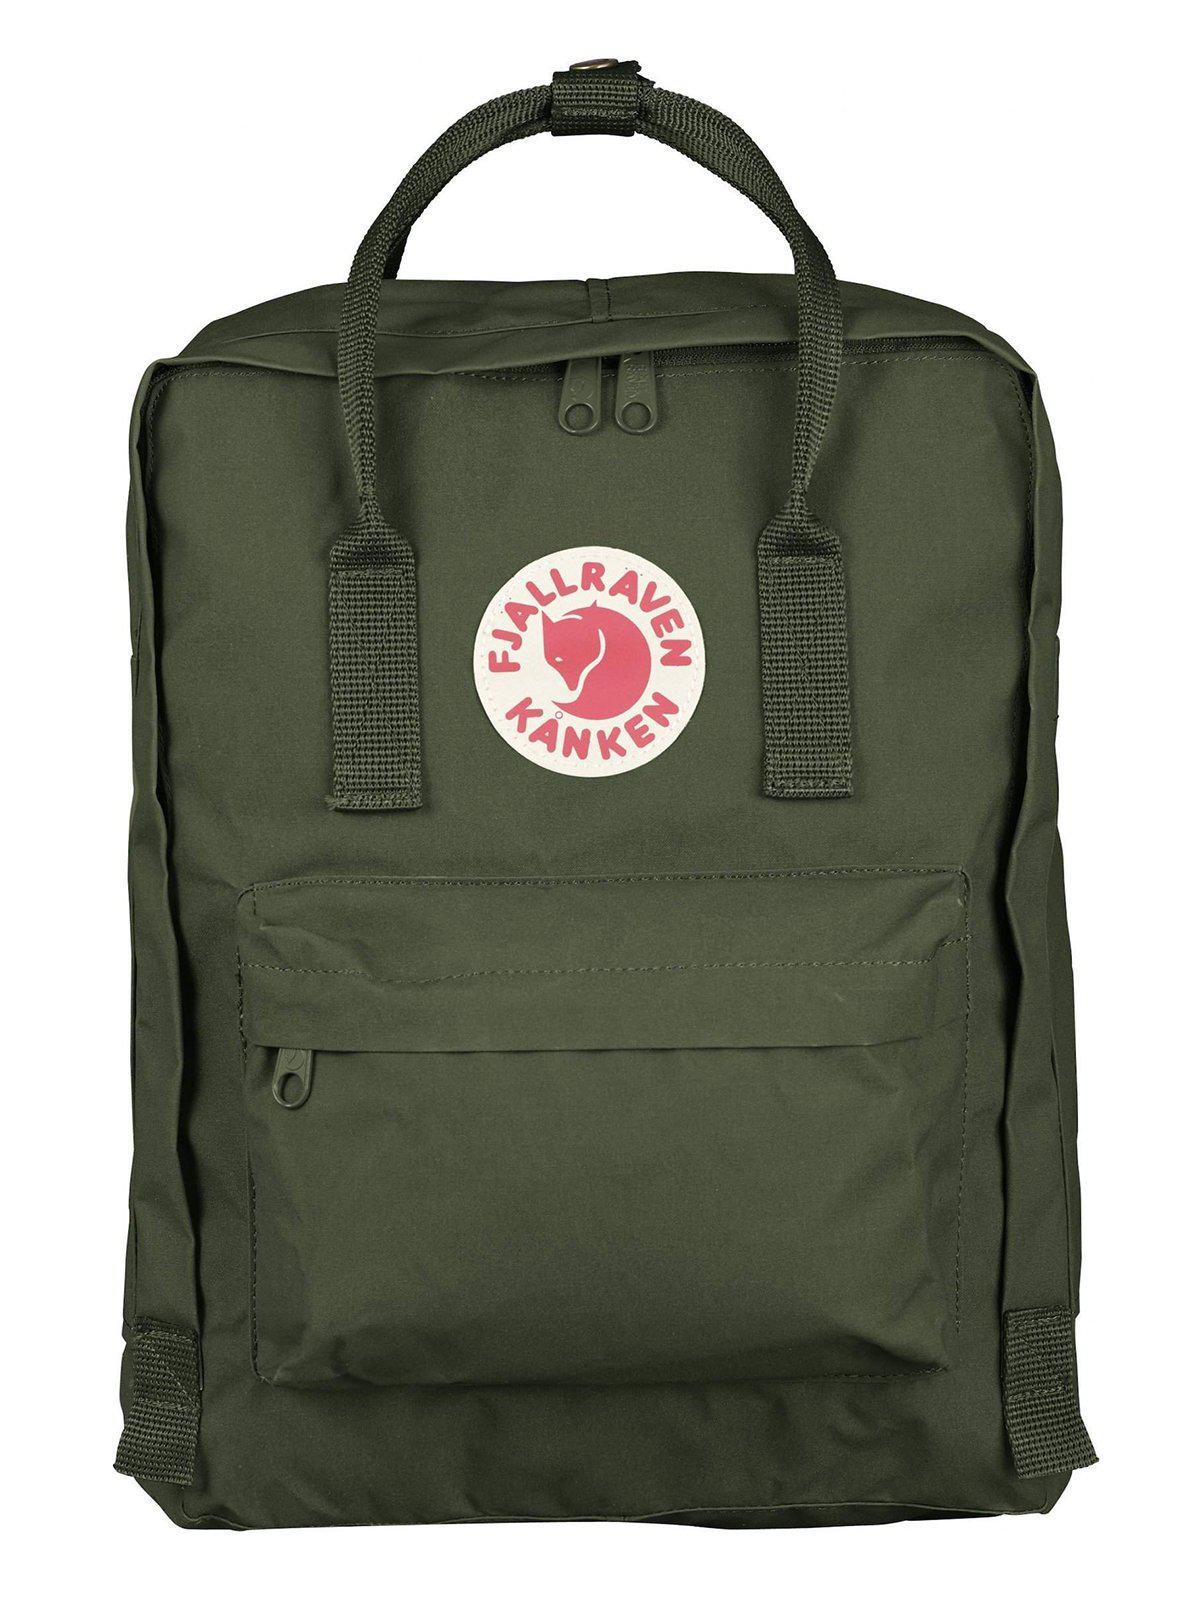 Fjallraven Kanken Classic Backpack Forest Green - MORE by Morello Indonesia